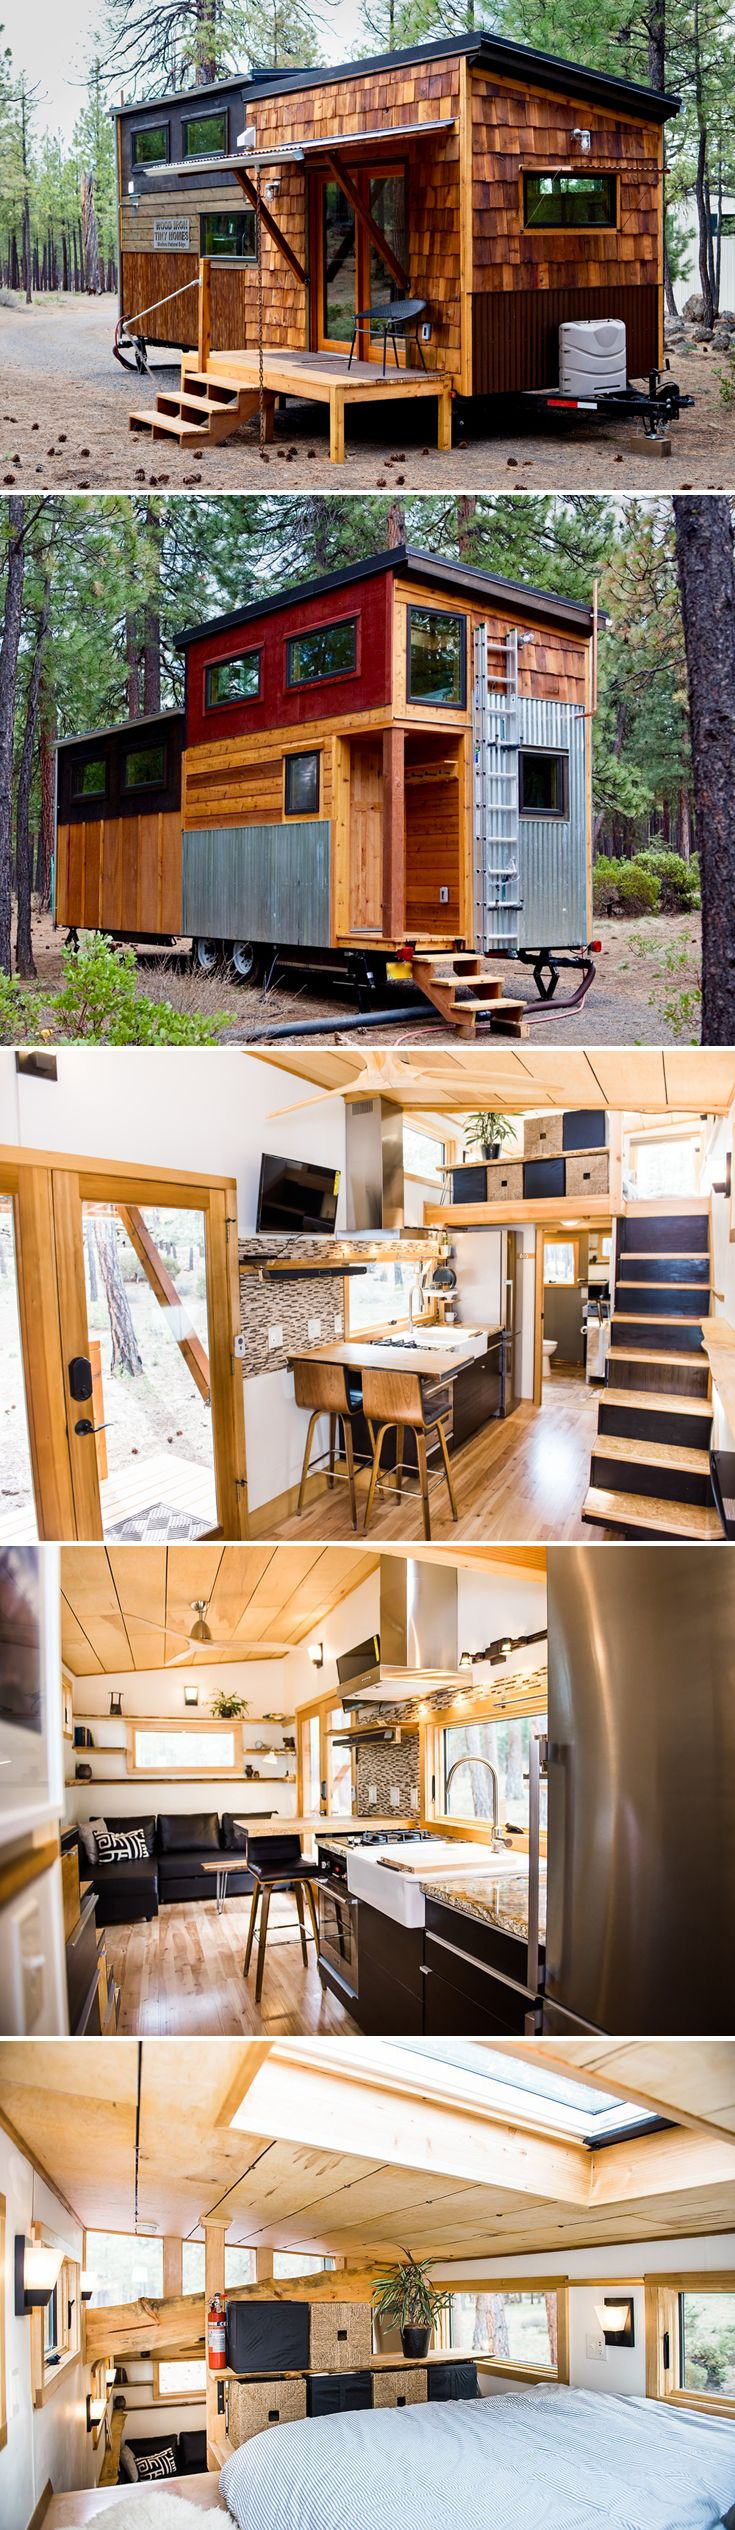 North Sister By Wood Iron Tiny Homes